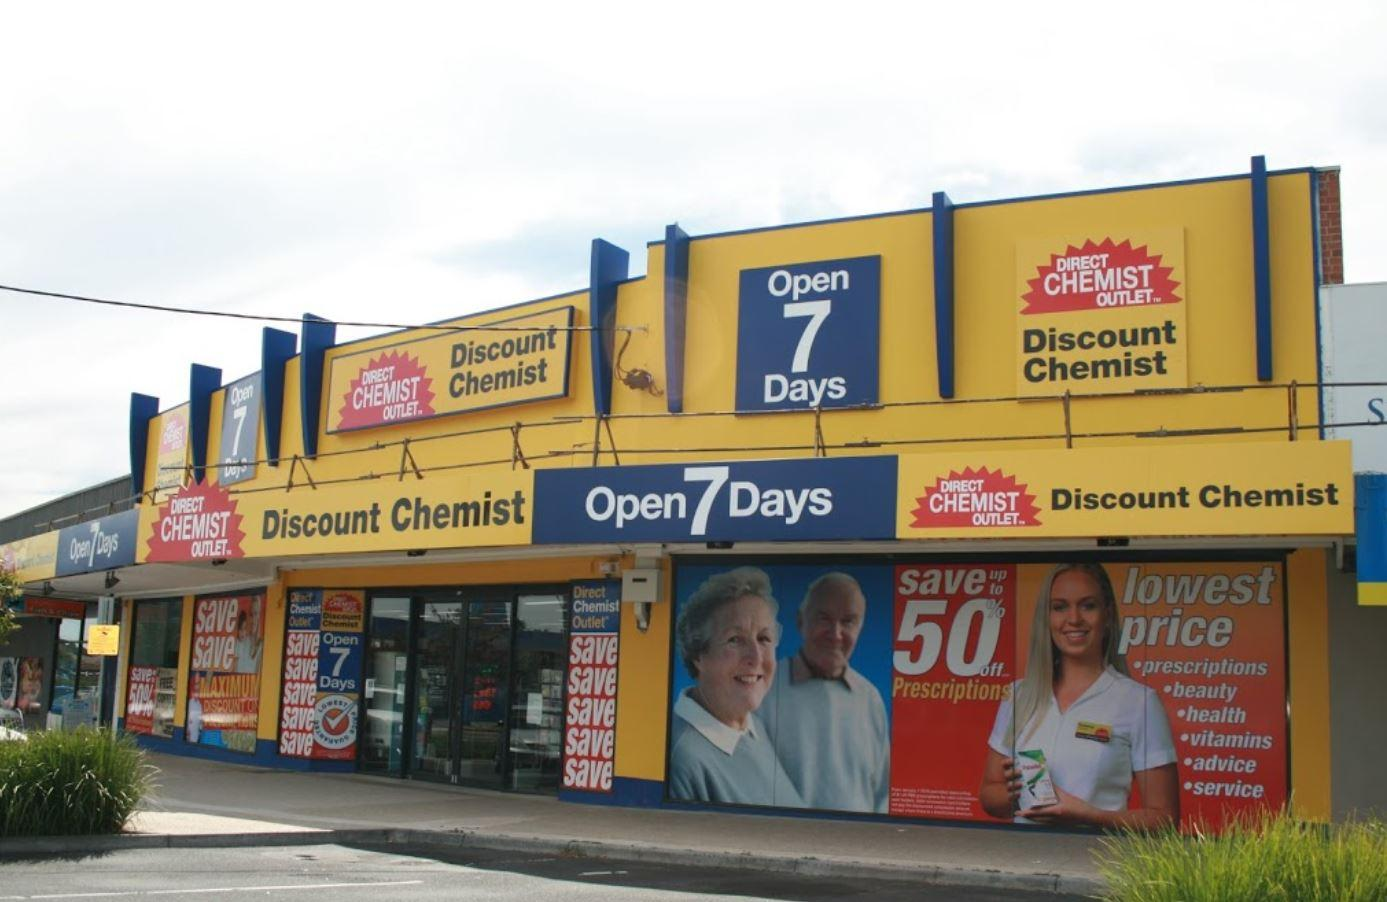 Direct Chemist Outlet Belvedere Park